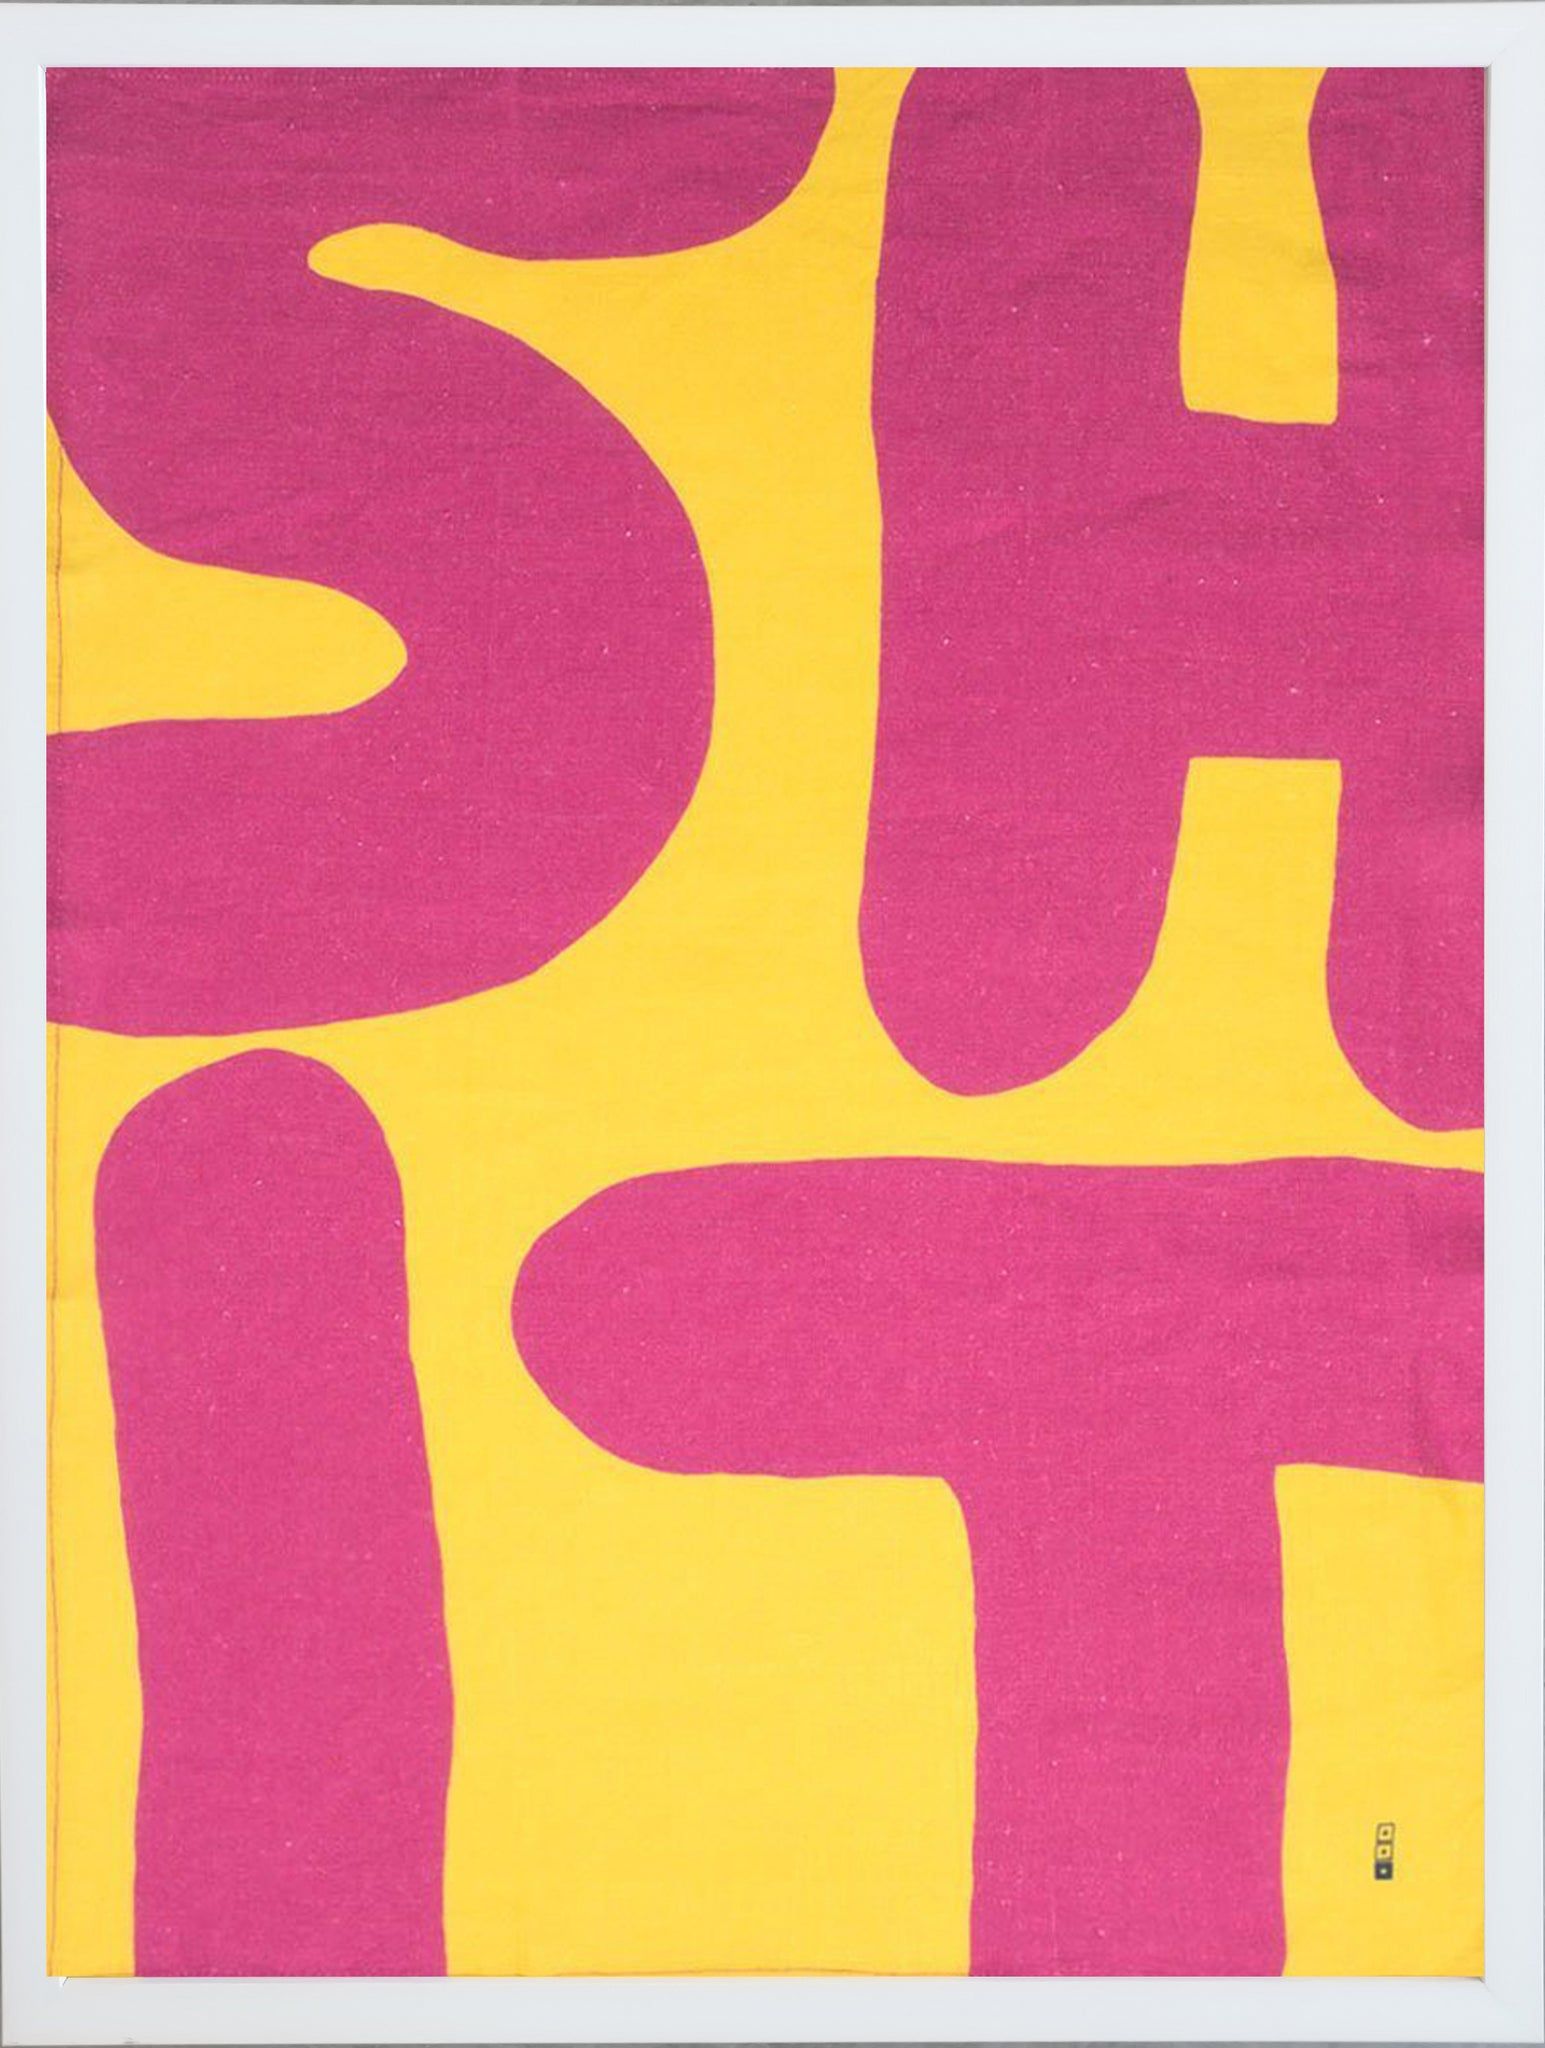 David Shrigley, Shit Print on Linen (Framed).